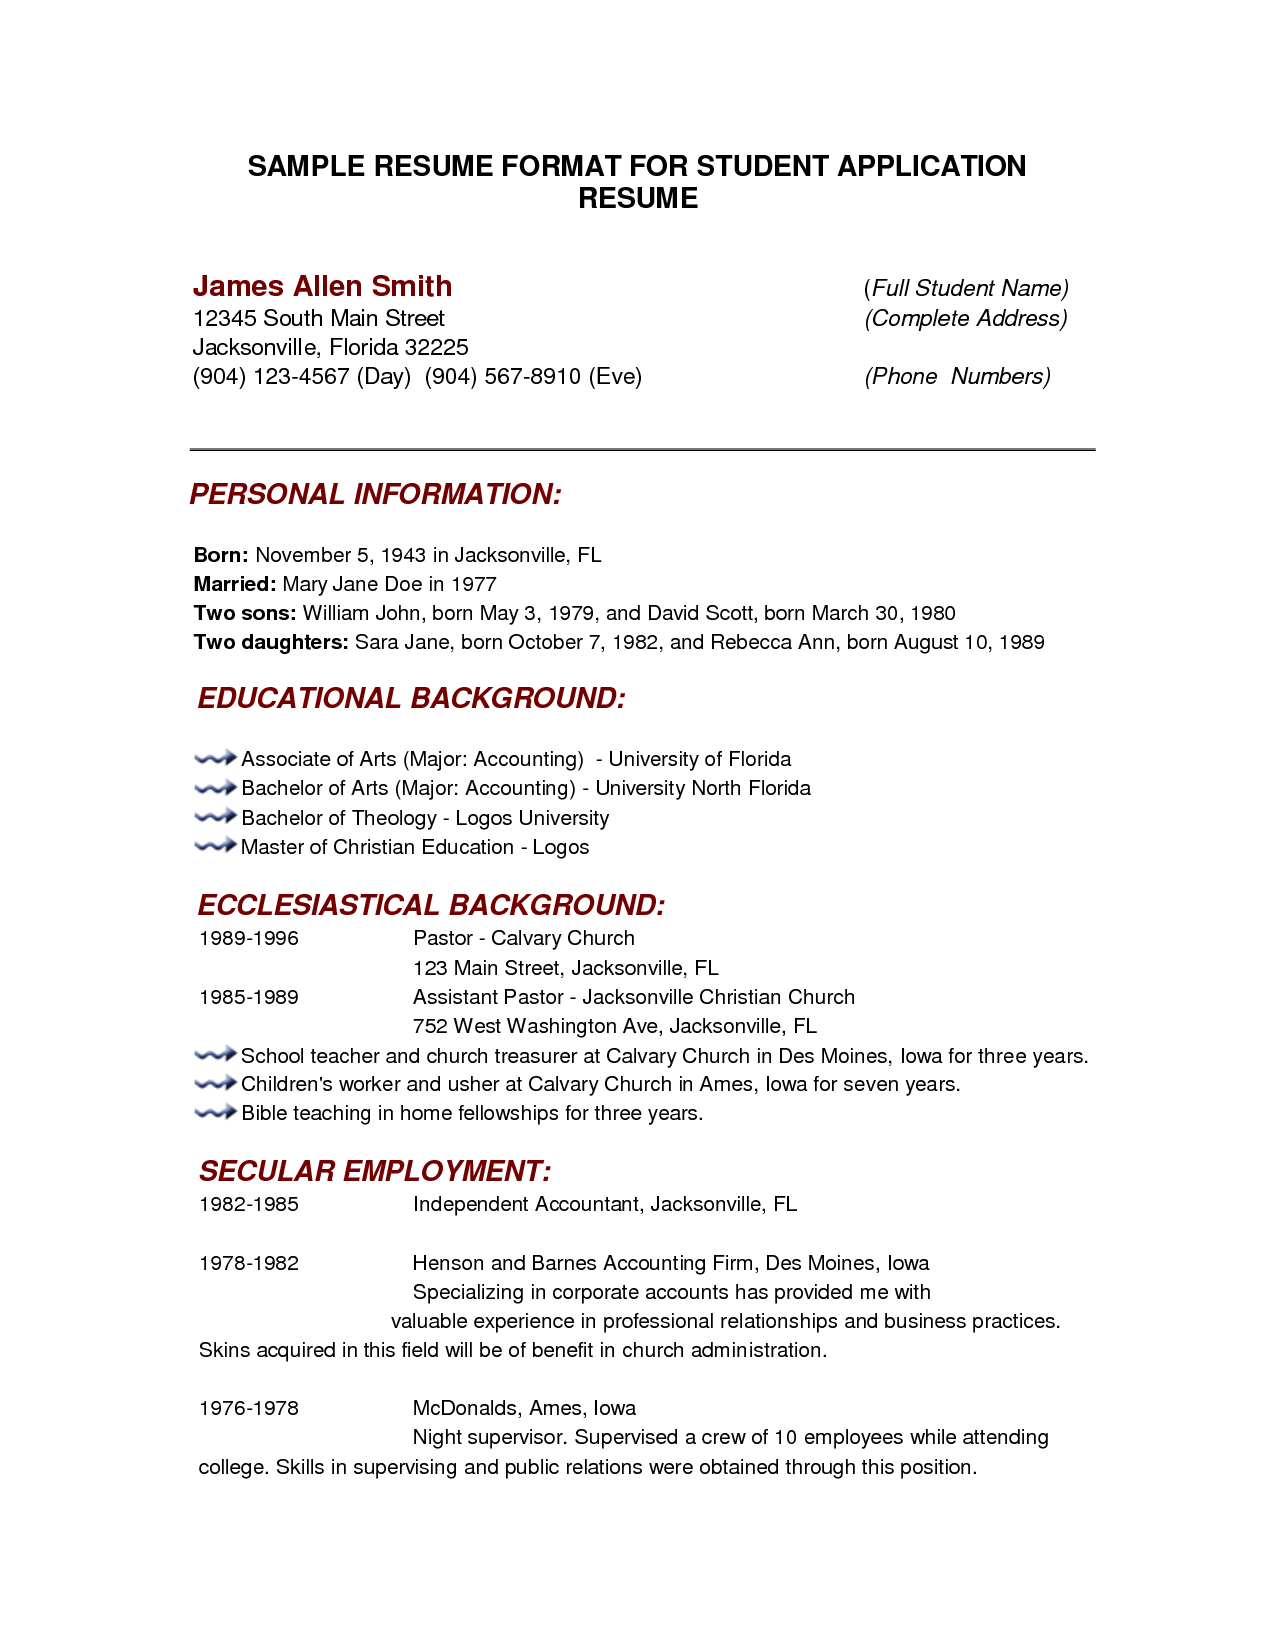 Resume Template College Pinjobresume On Resume Career Termplate Free  Pinterest